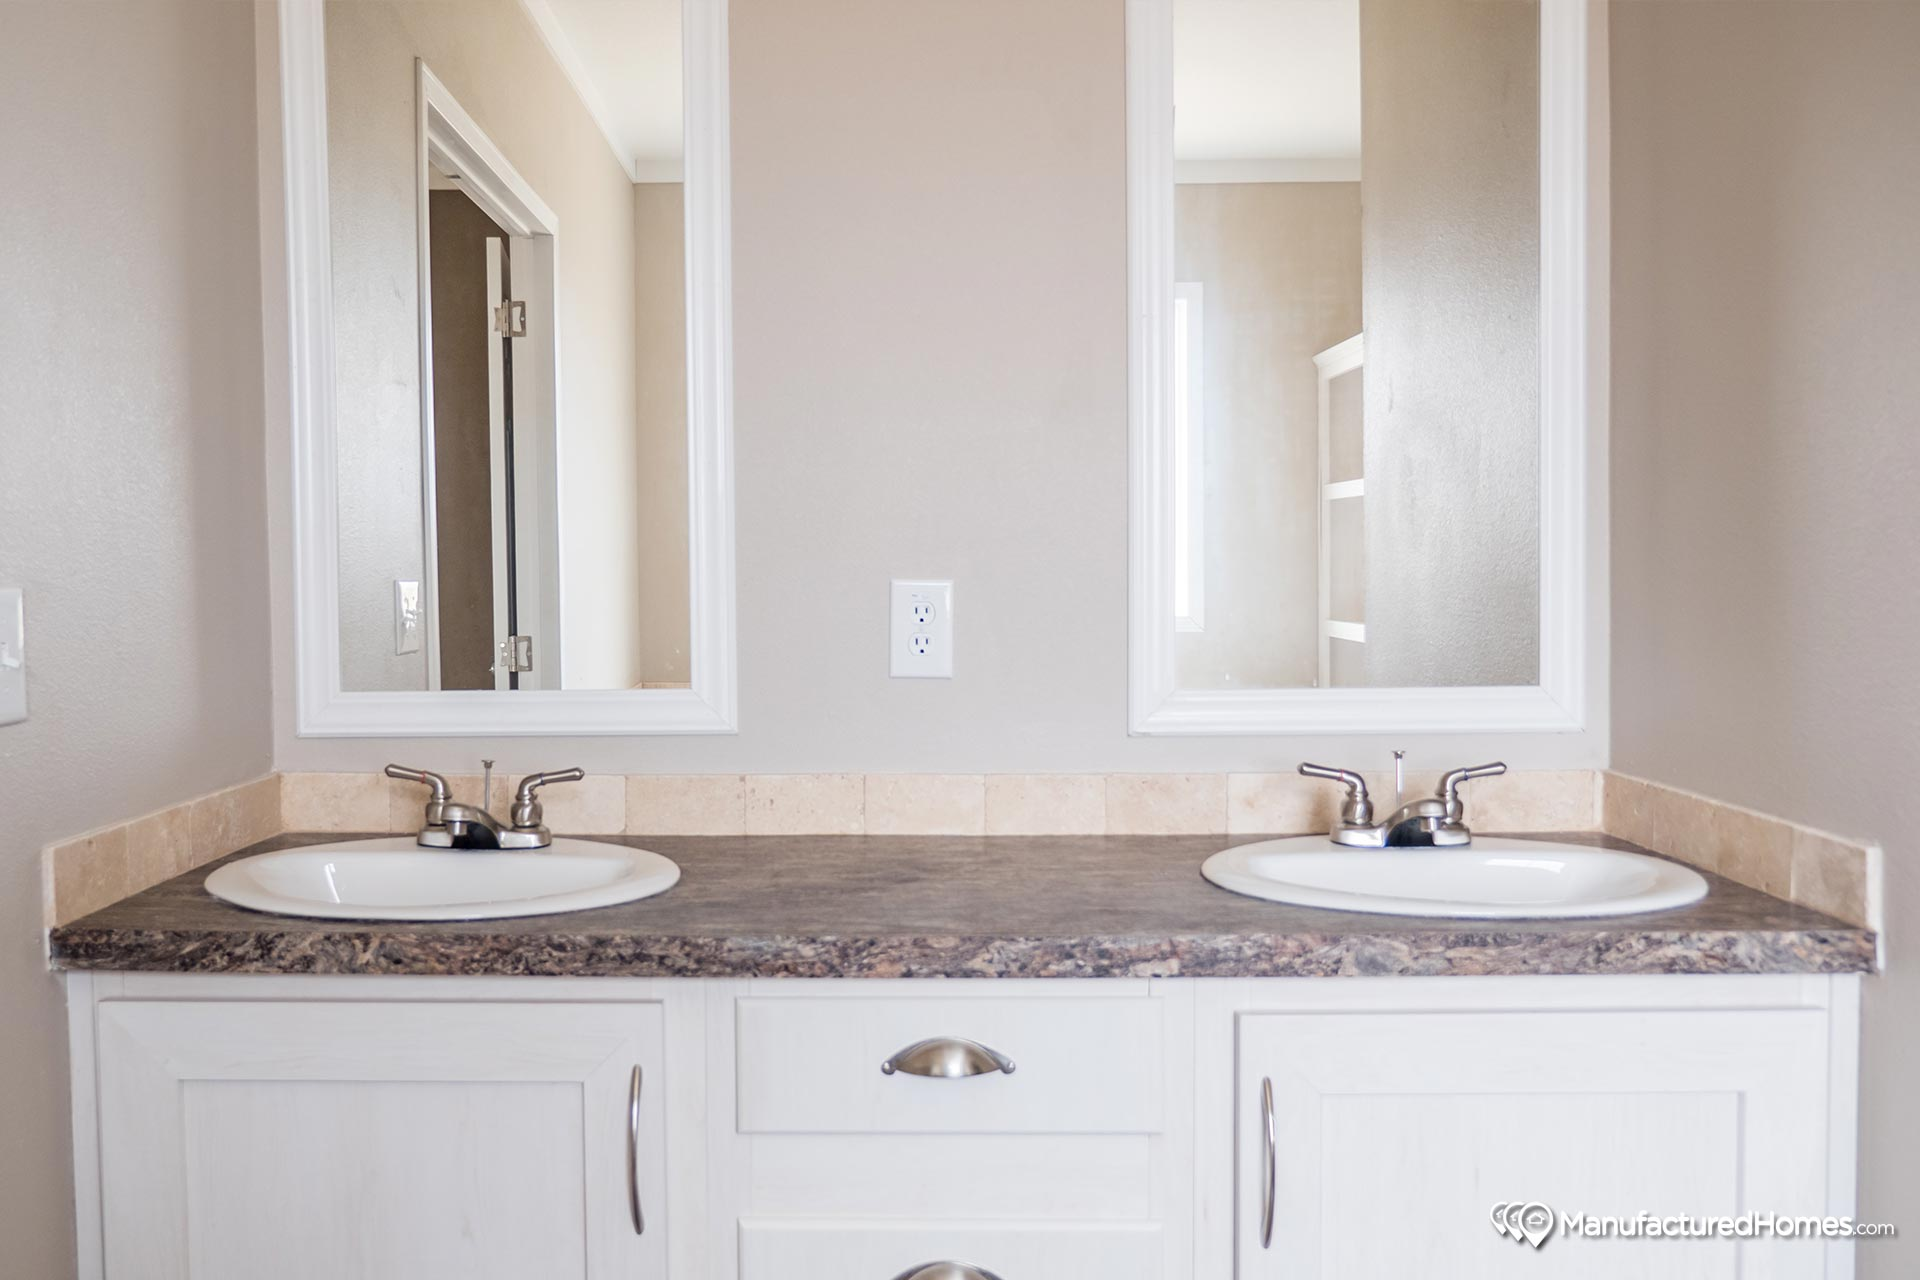 Manor Hill / The St. Louis - Bathroom